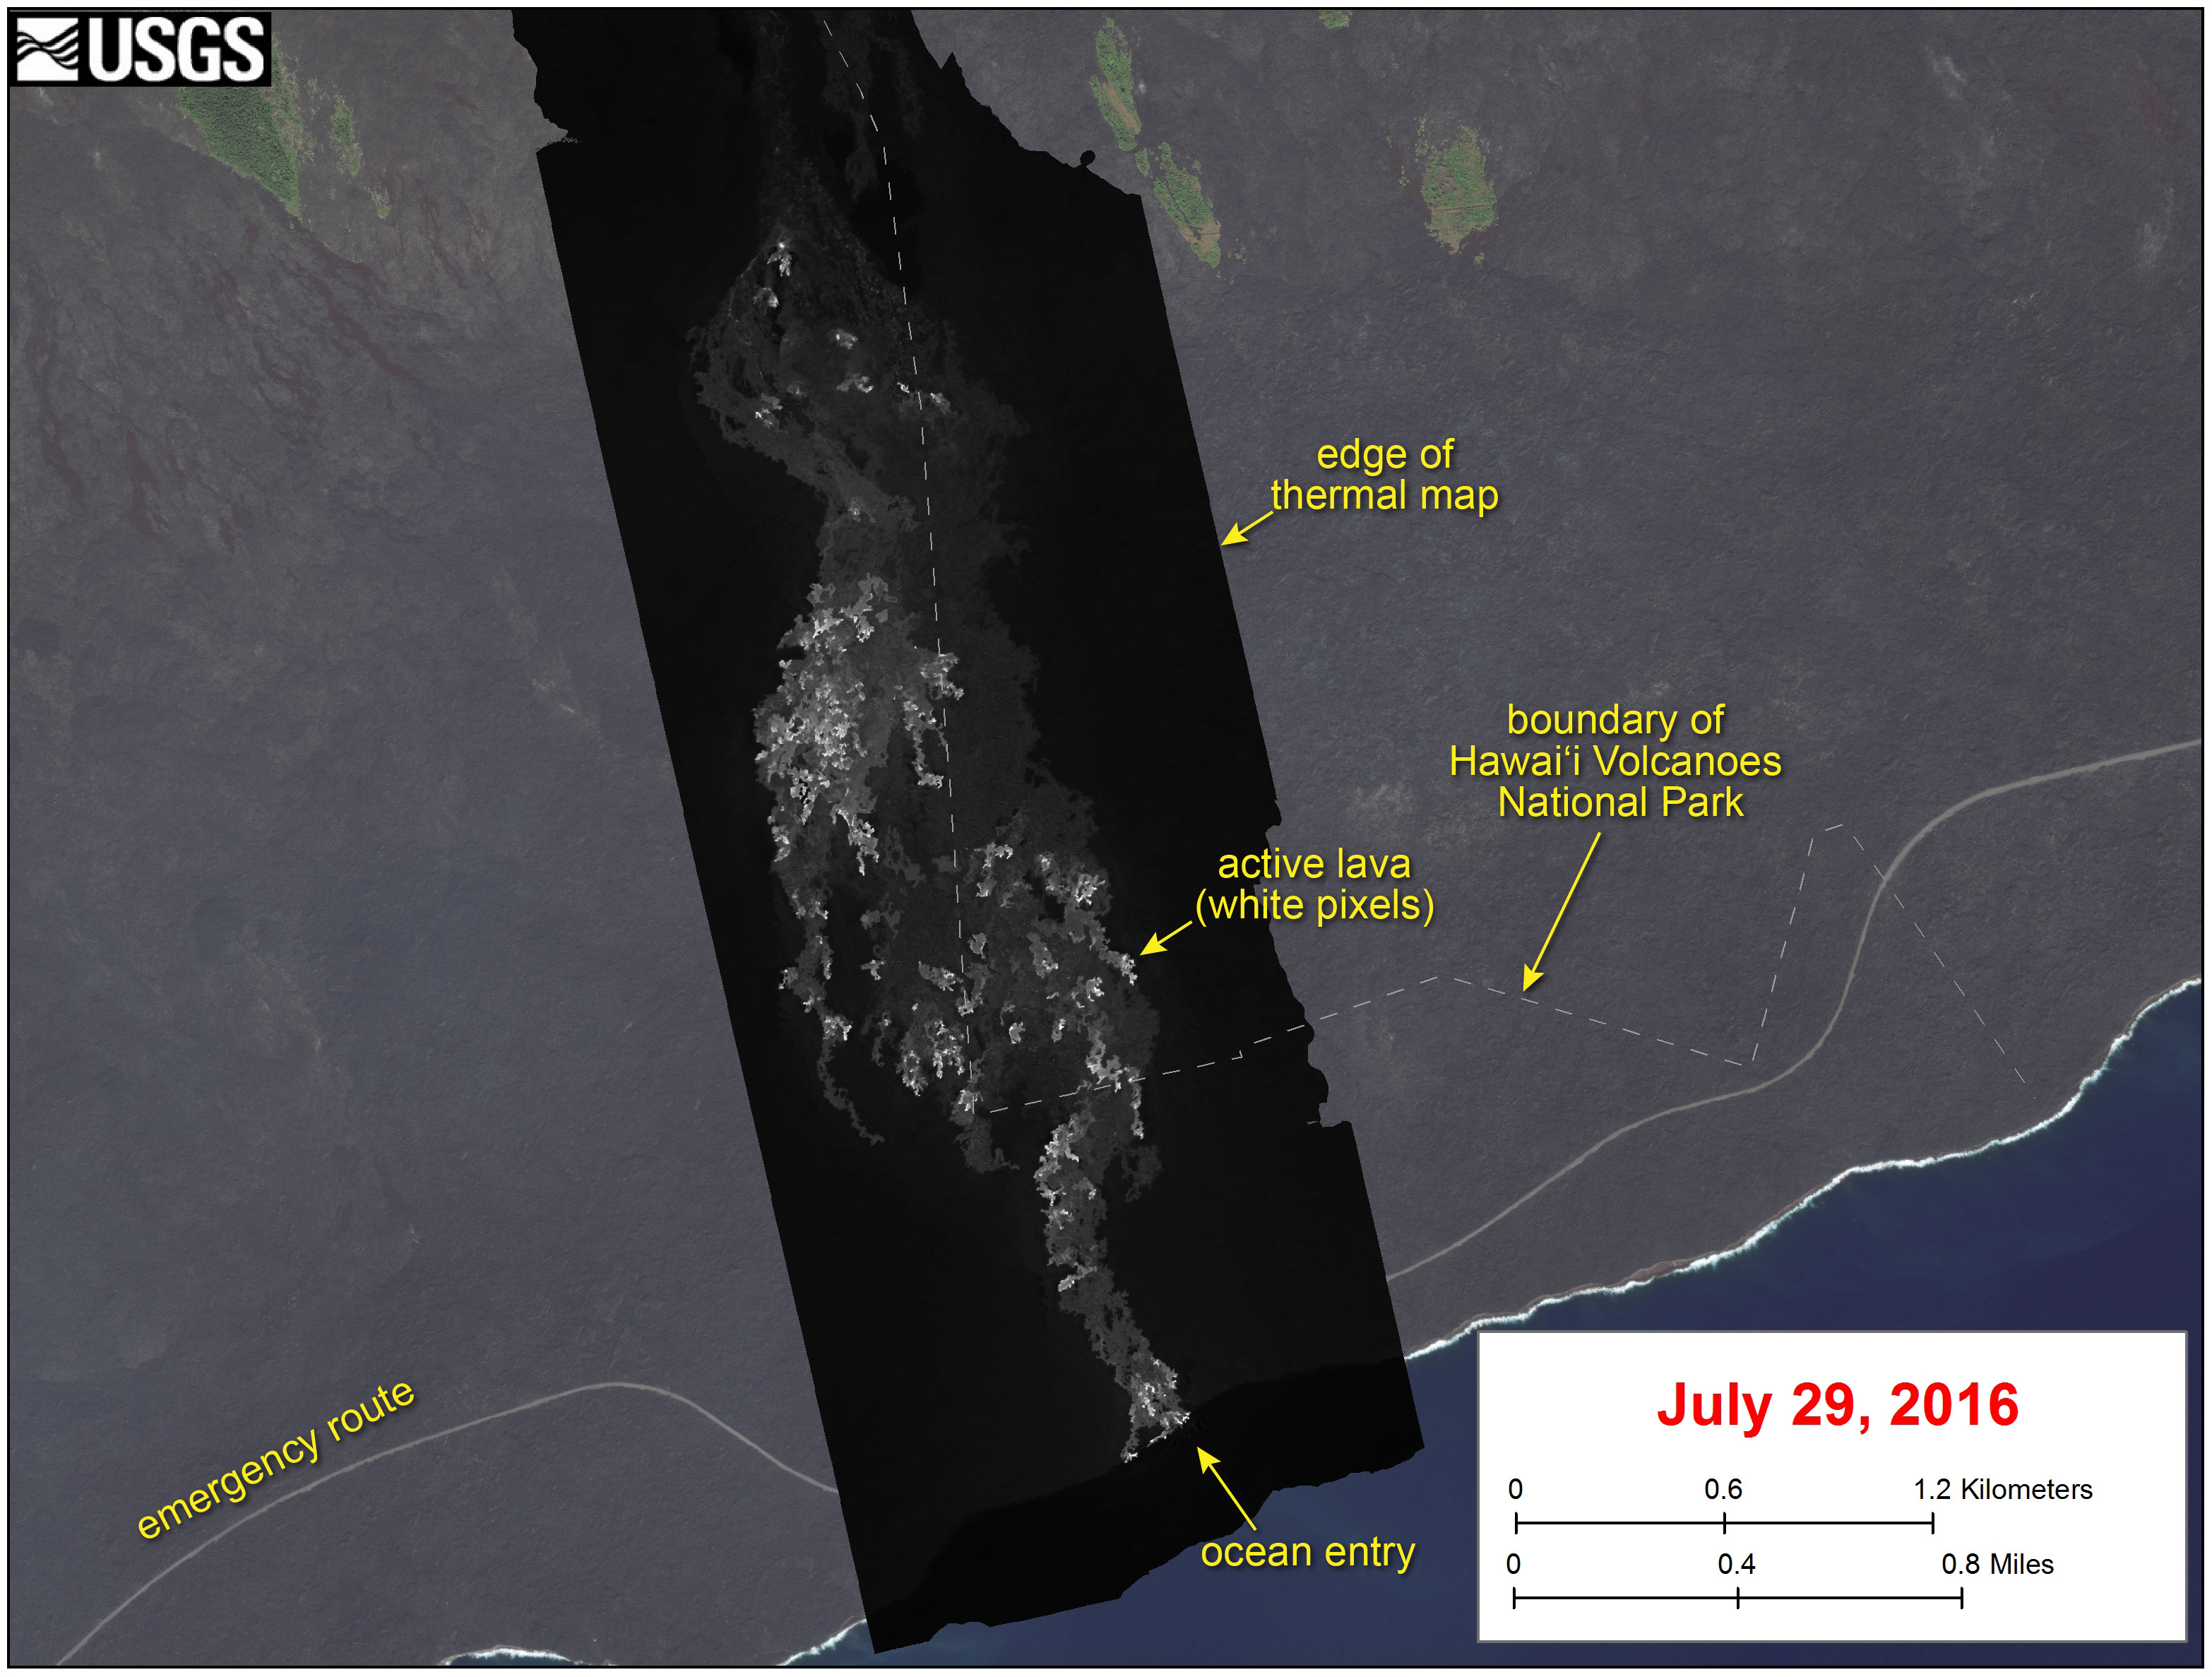 This USGS image shows a thermal map of the flow on the pali and coastal plain, created from airborne thermal images. White pixels are hot, and show areas of active surface breakouts. The background image is a satellite image collected before the current lava flow was active. The thermal map shows scattered pāhoehoe breakouts on the coastal plain, with a narrow lobe of lava crossing the gravel road and extending to the ocean.